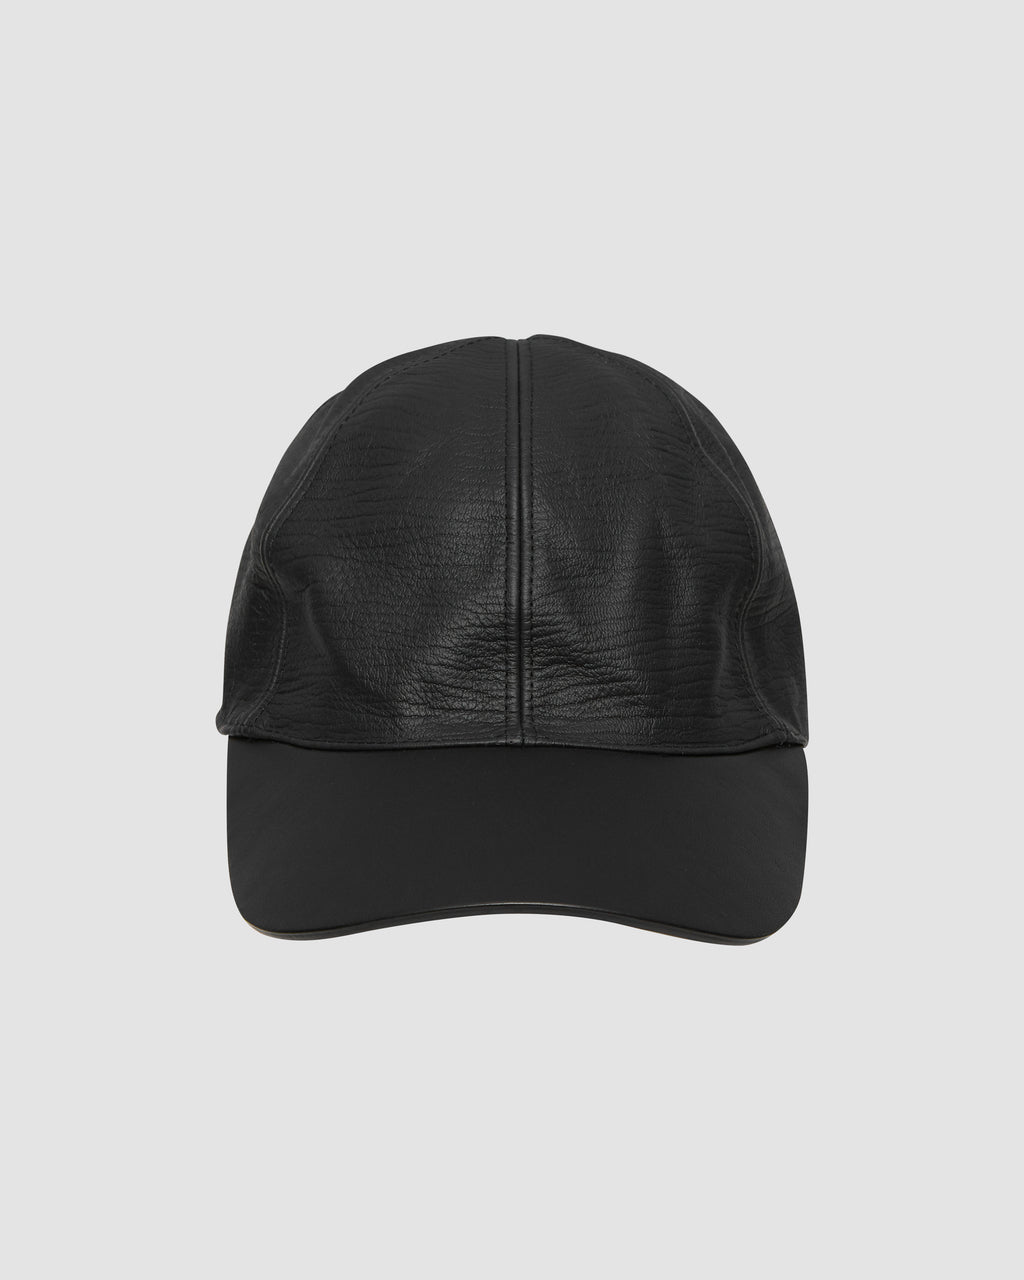 1017 ALYX 9SM | CLASSIC HAT IN LEATHER W BUCKLE | Hat | Accessories, BLACK, Google Shopping, Hat, HATS, Man, S20, S20 Drop II, UNISEX, Woman